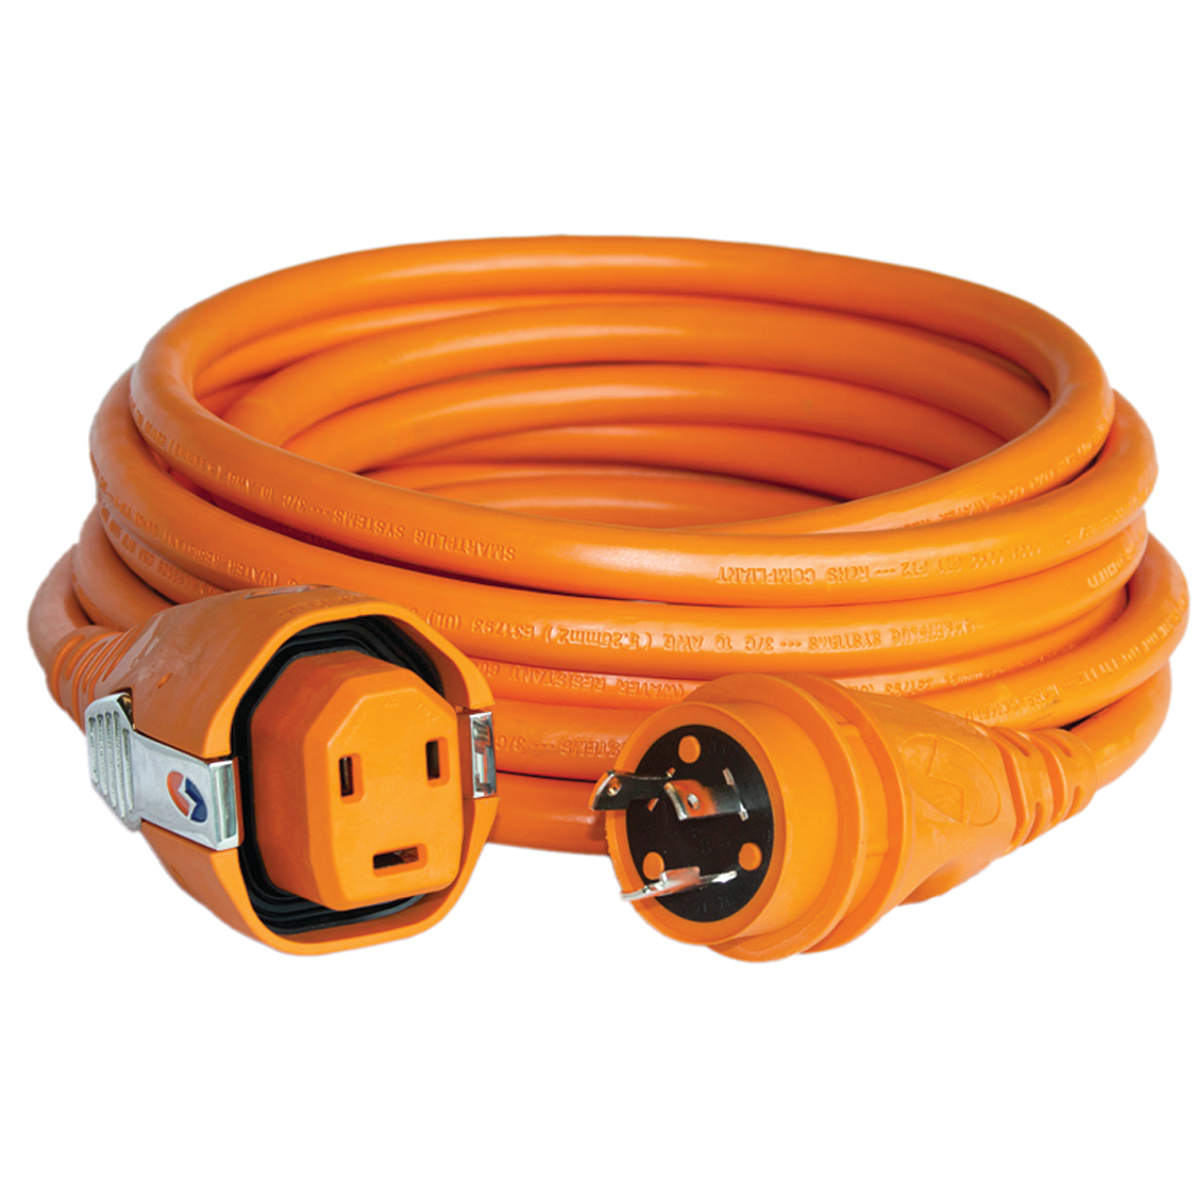 Shore Power Cords -AMPAND- Cables